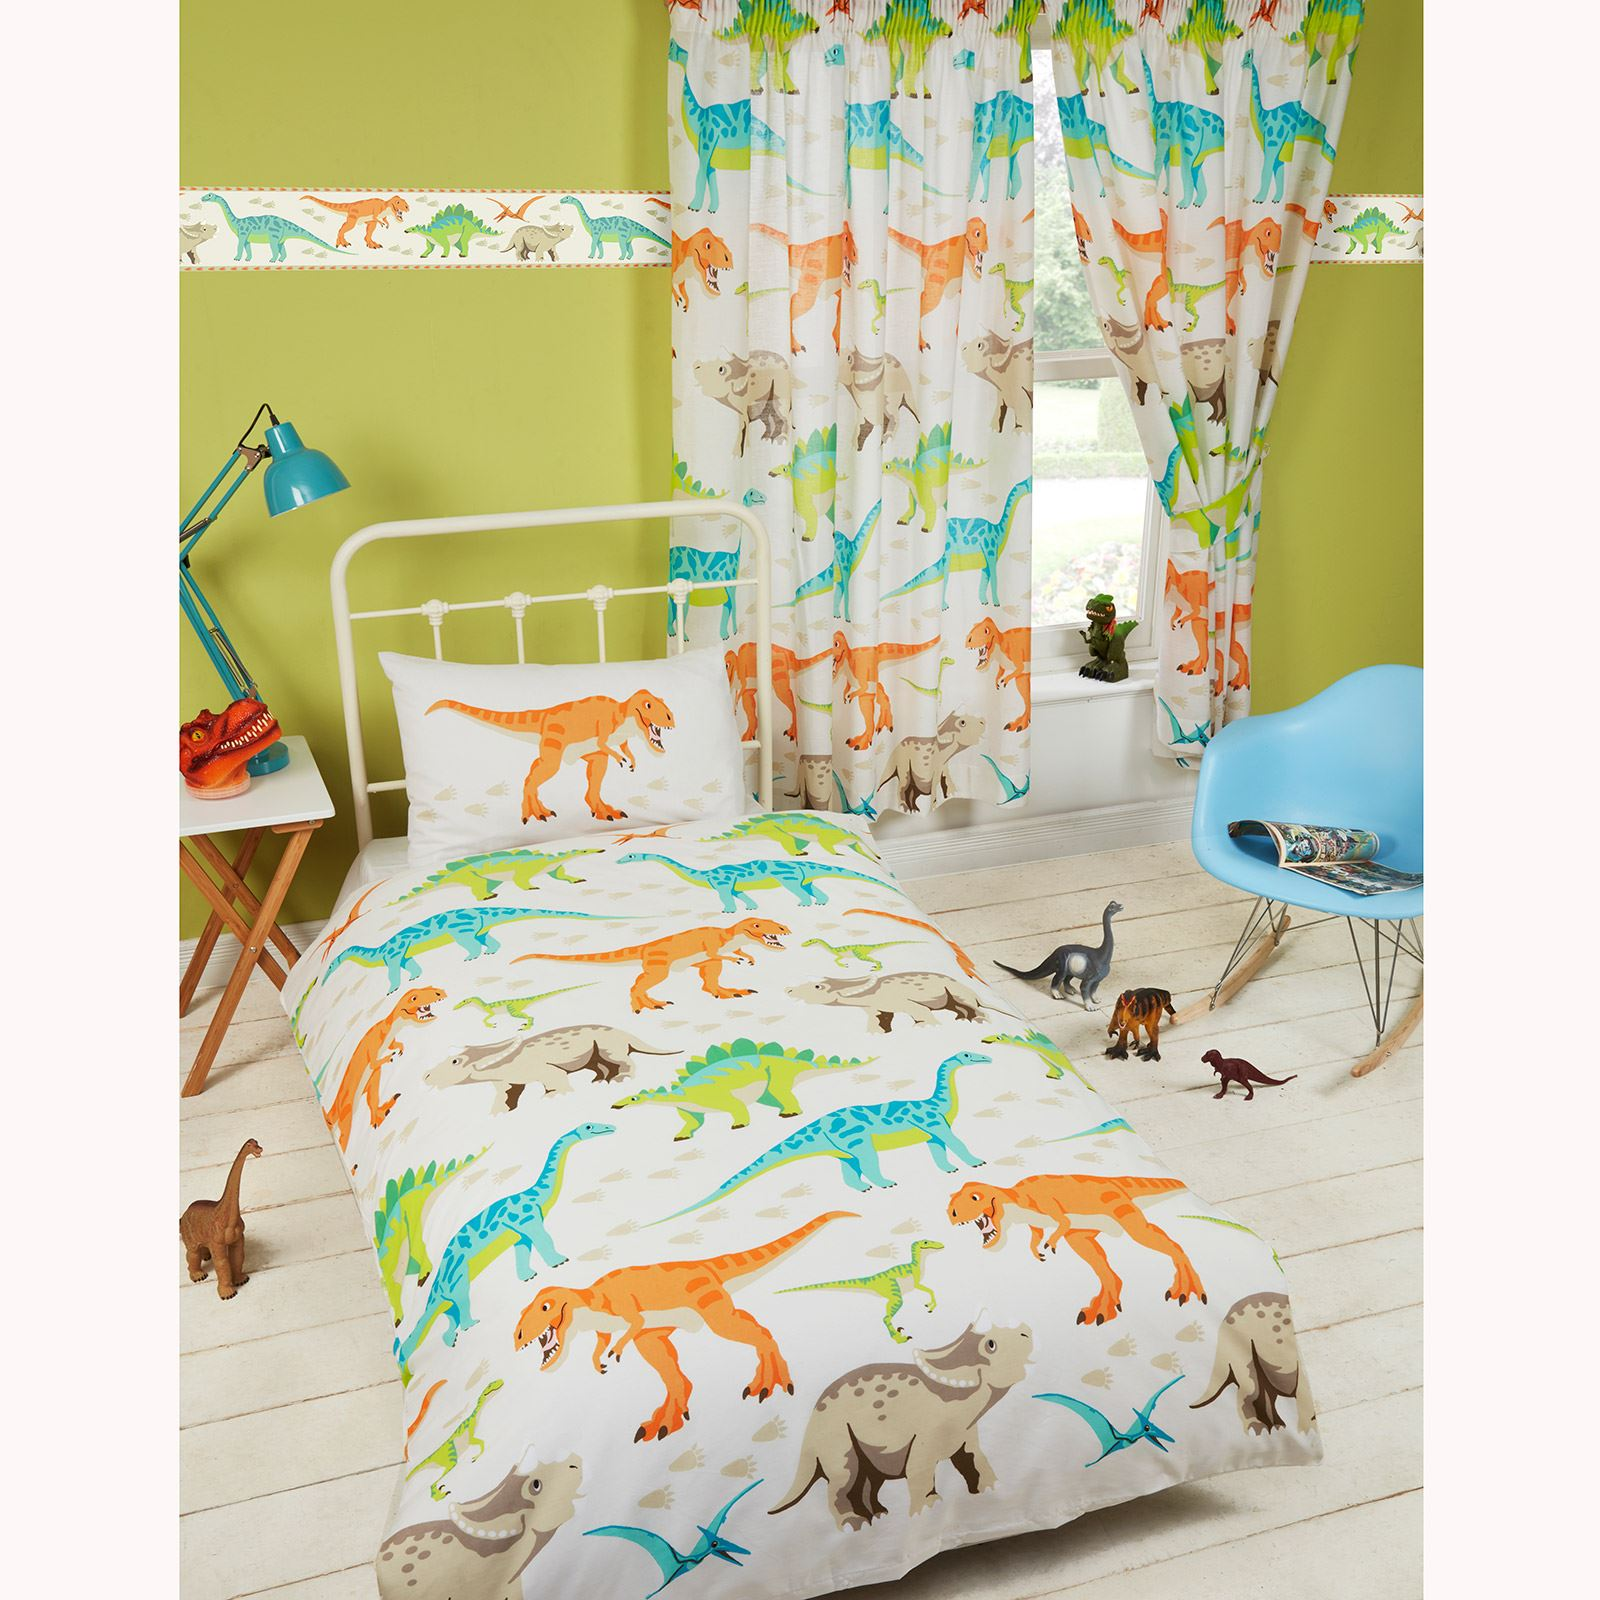 DINOSAUR WORLD KIDS MATCHING BEDDING SETS CURTAINS WALLPAPER BORDER NEW FREE P